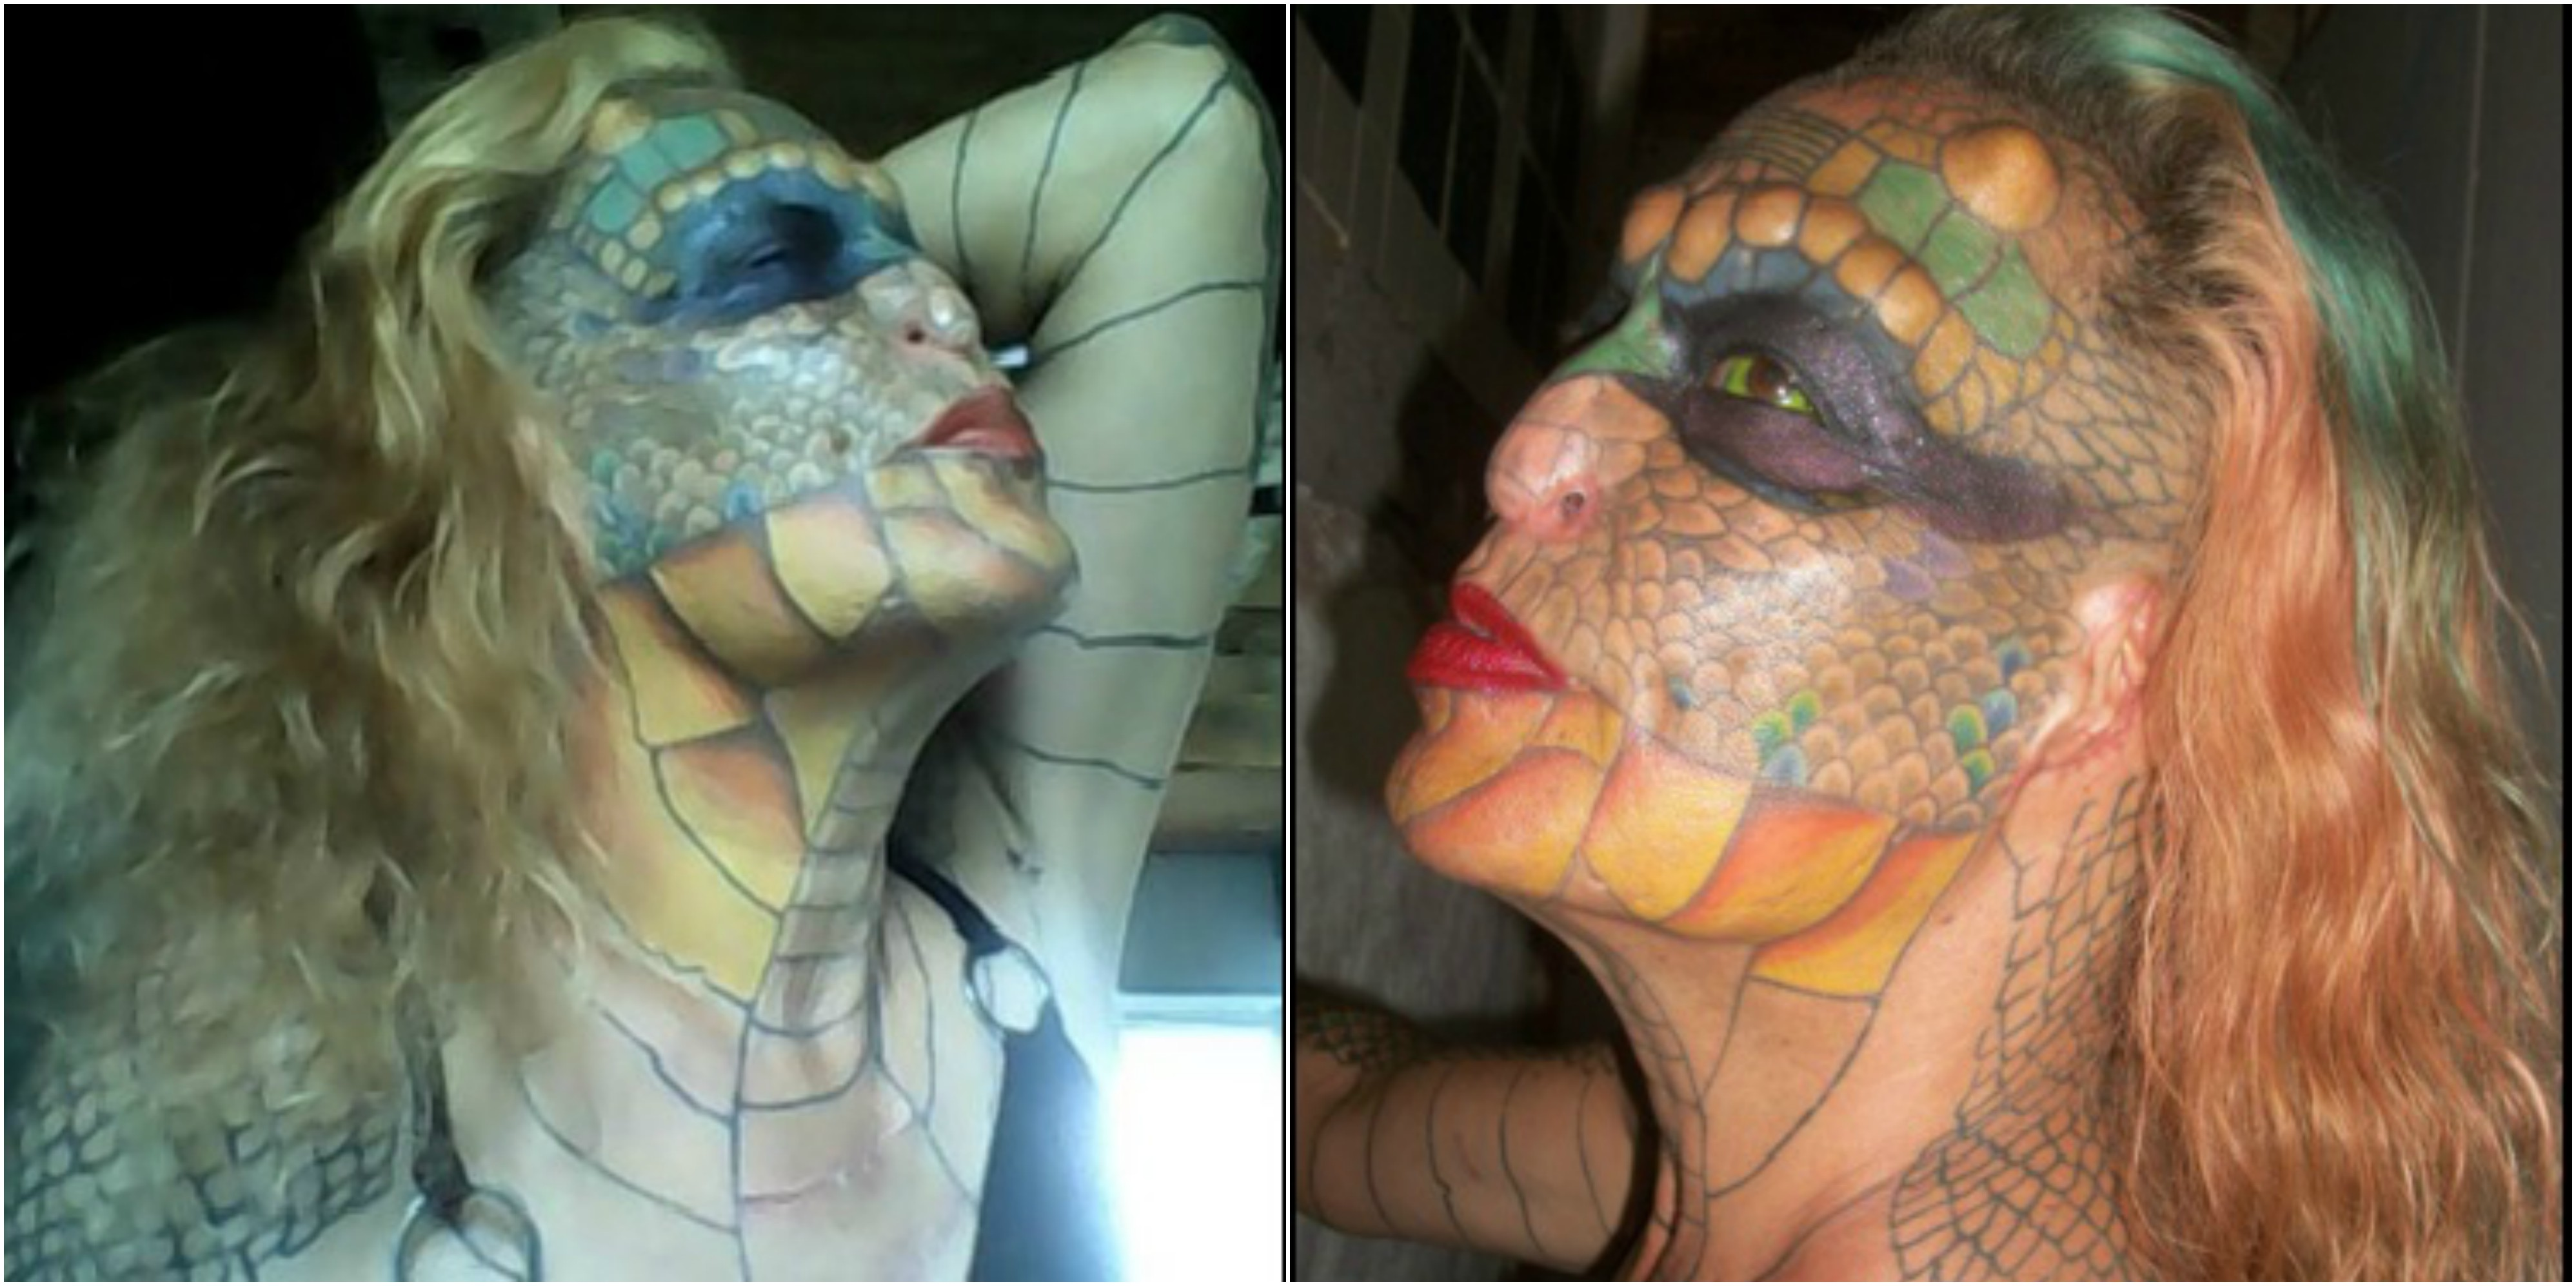 WTF: Transgender Woman Gets Her Nose And Ears Removed To Become 'Dragon Lady'